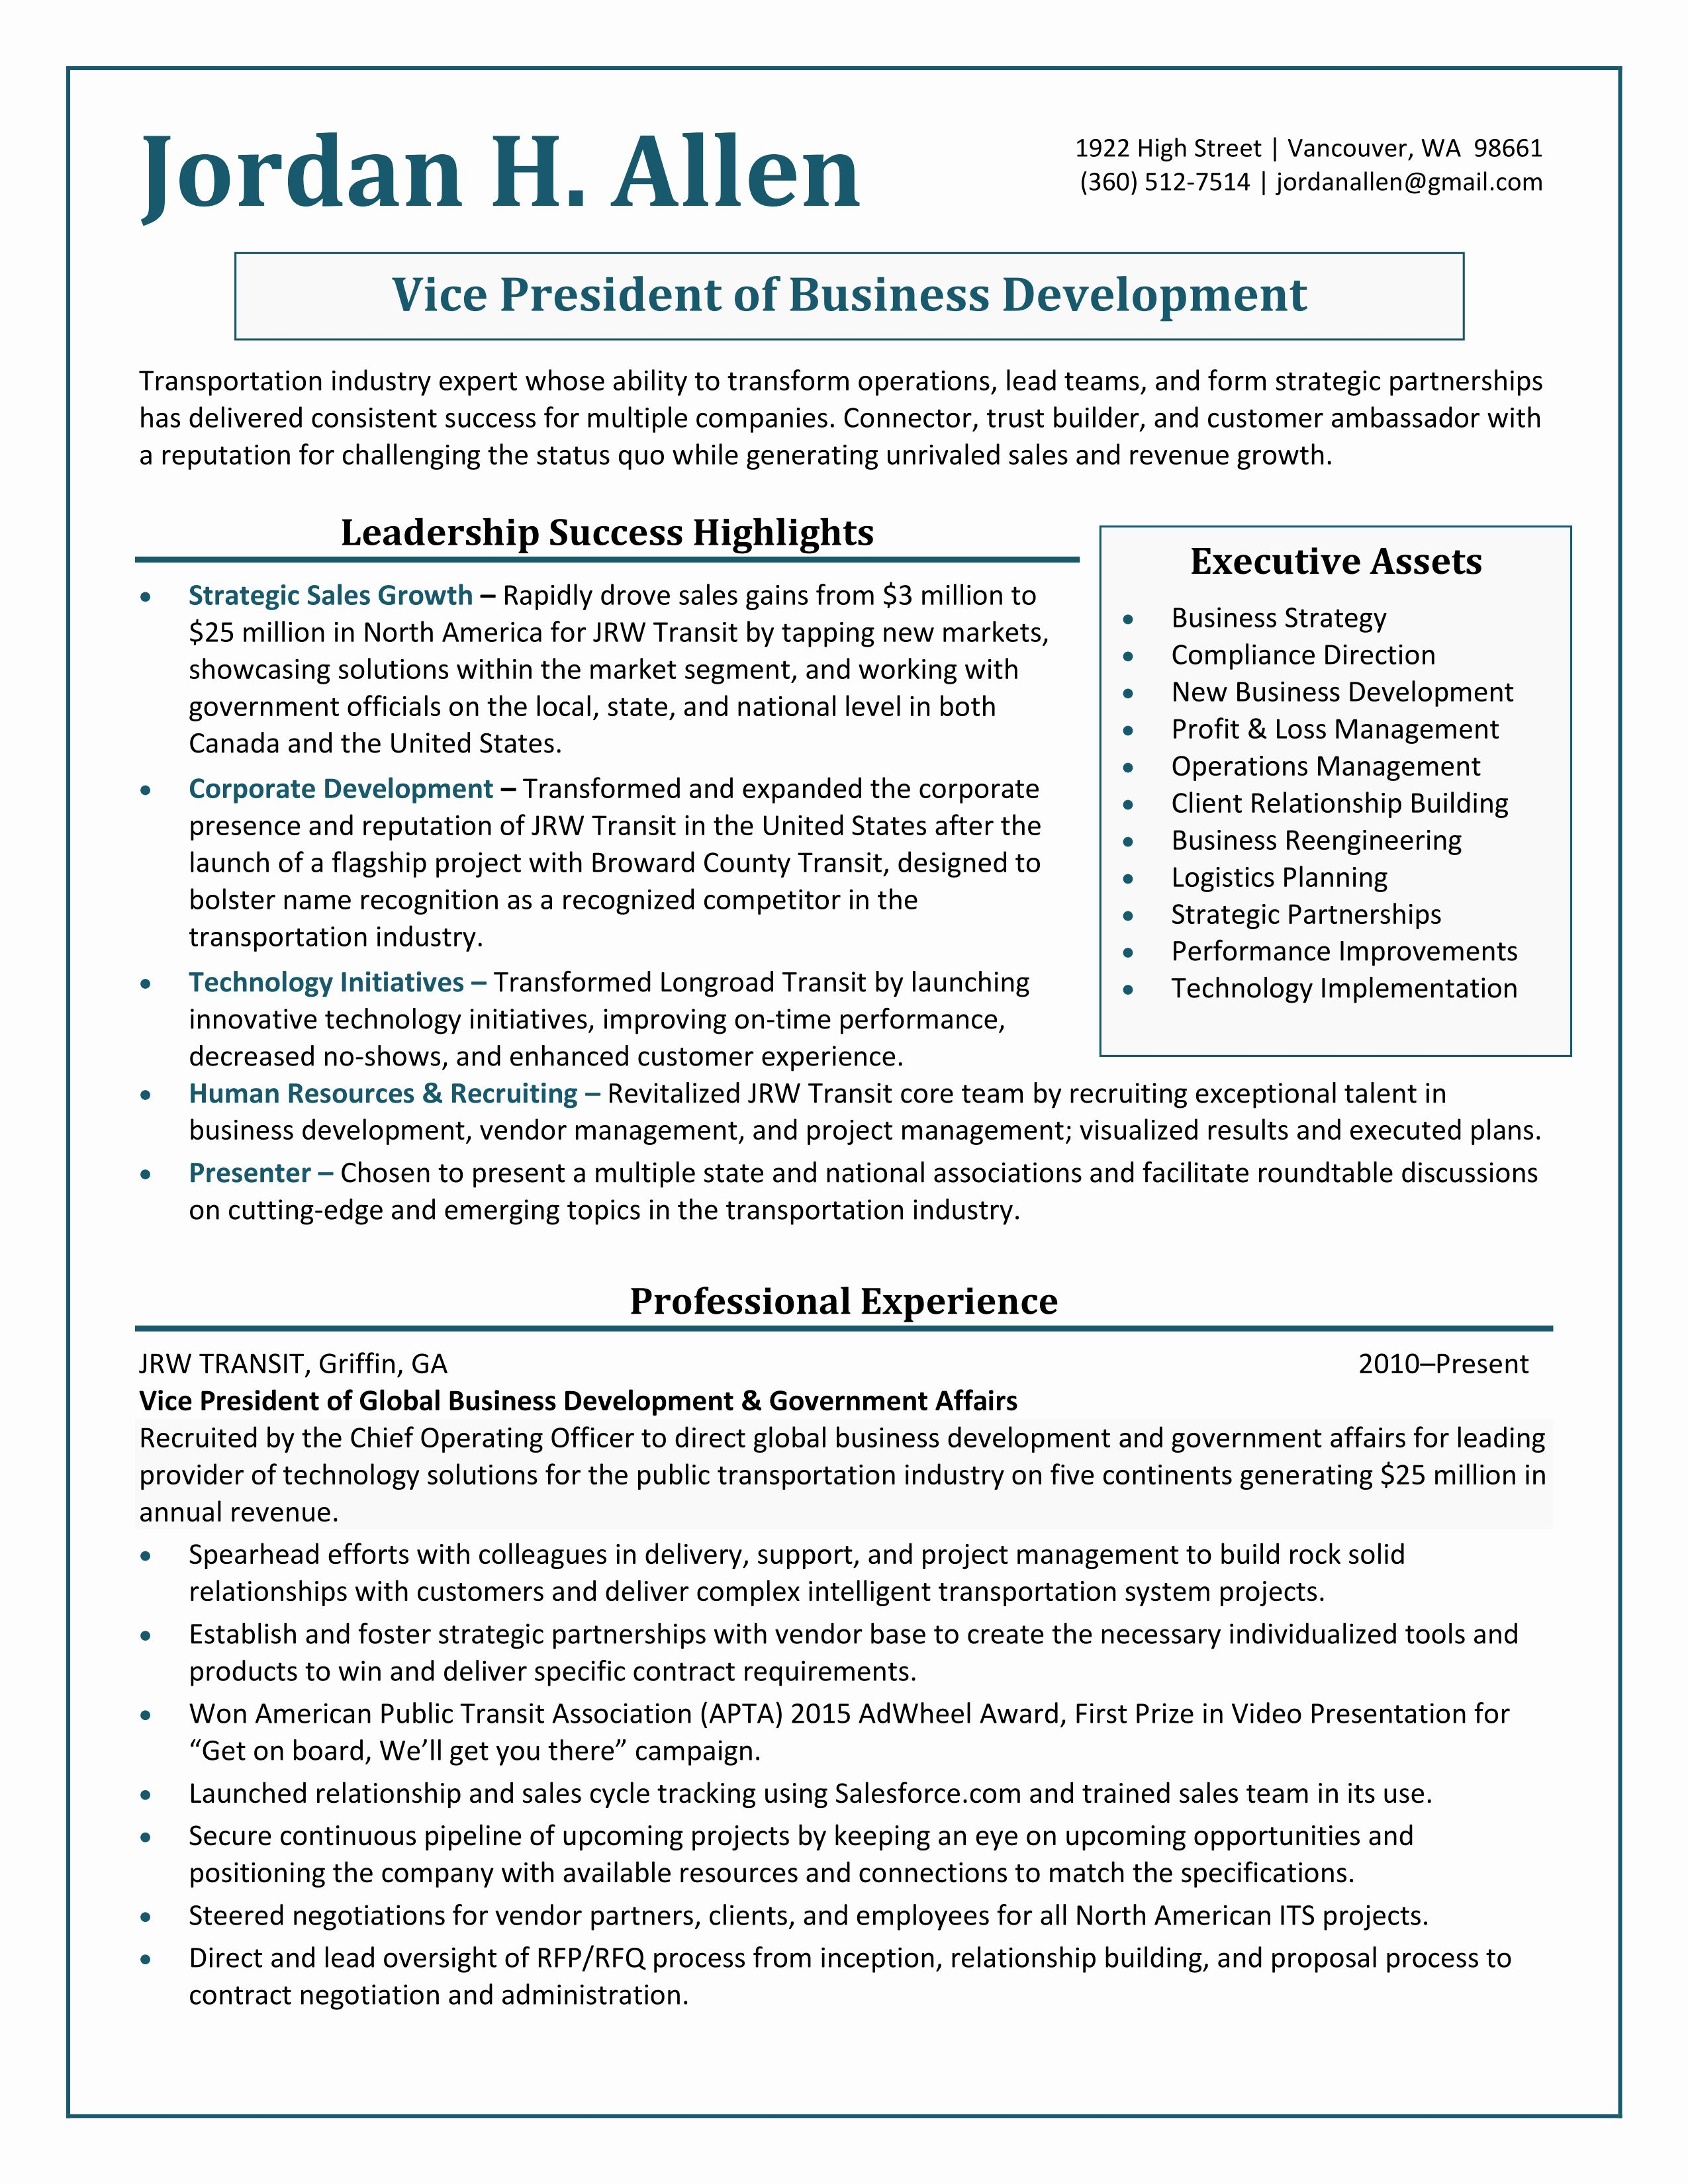 Best of professional resume samples by julie walraven cmrw